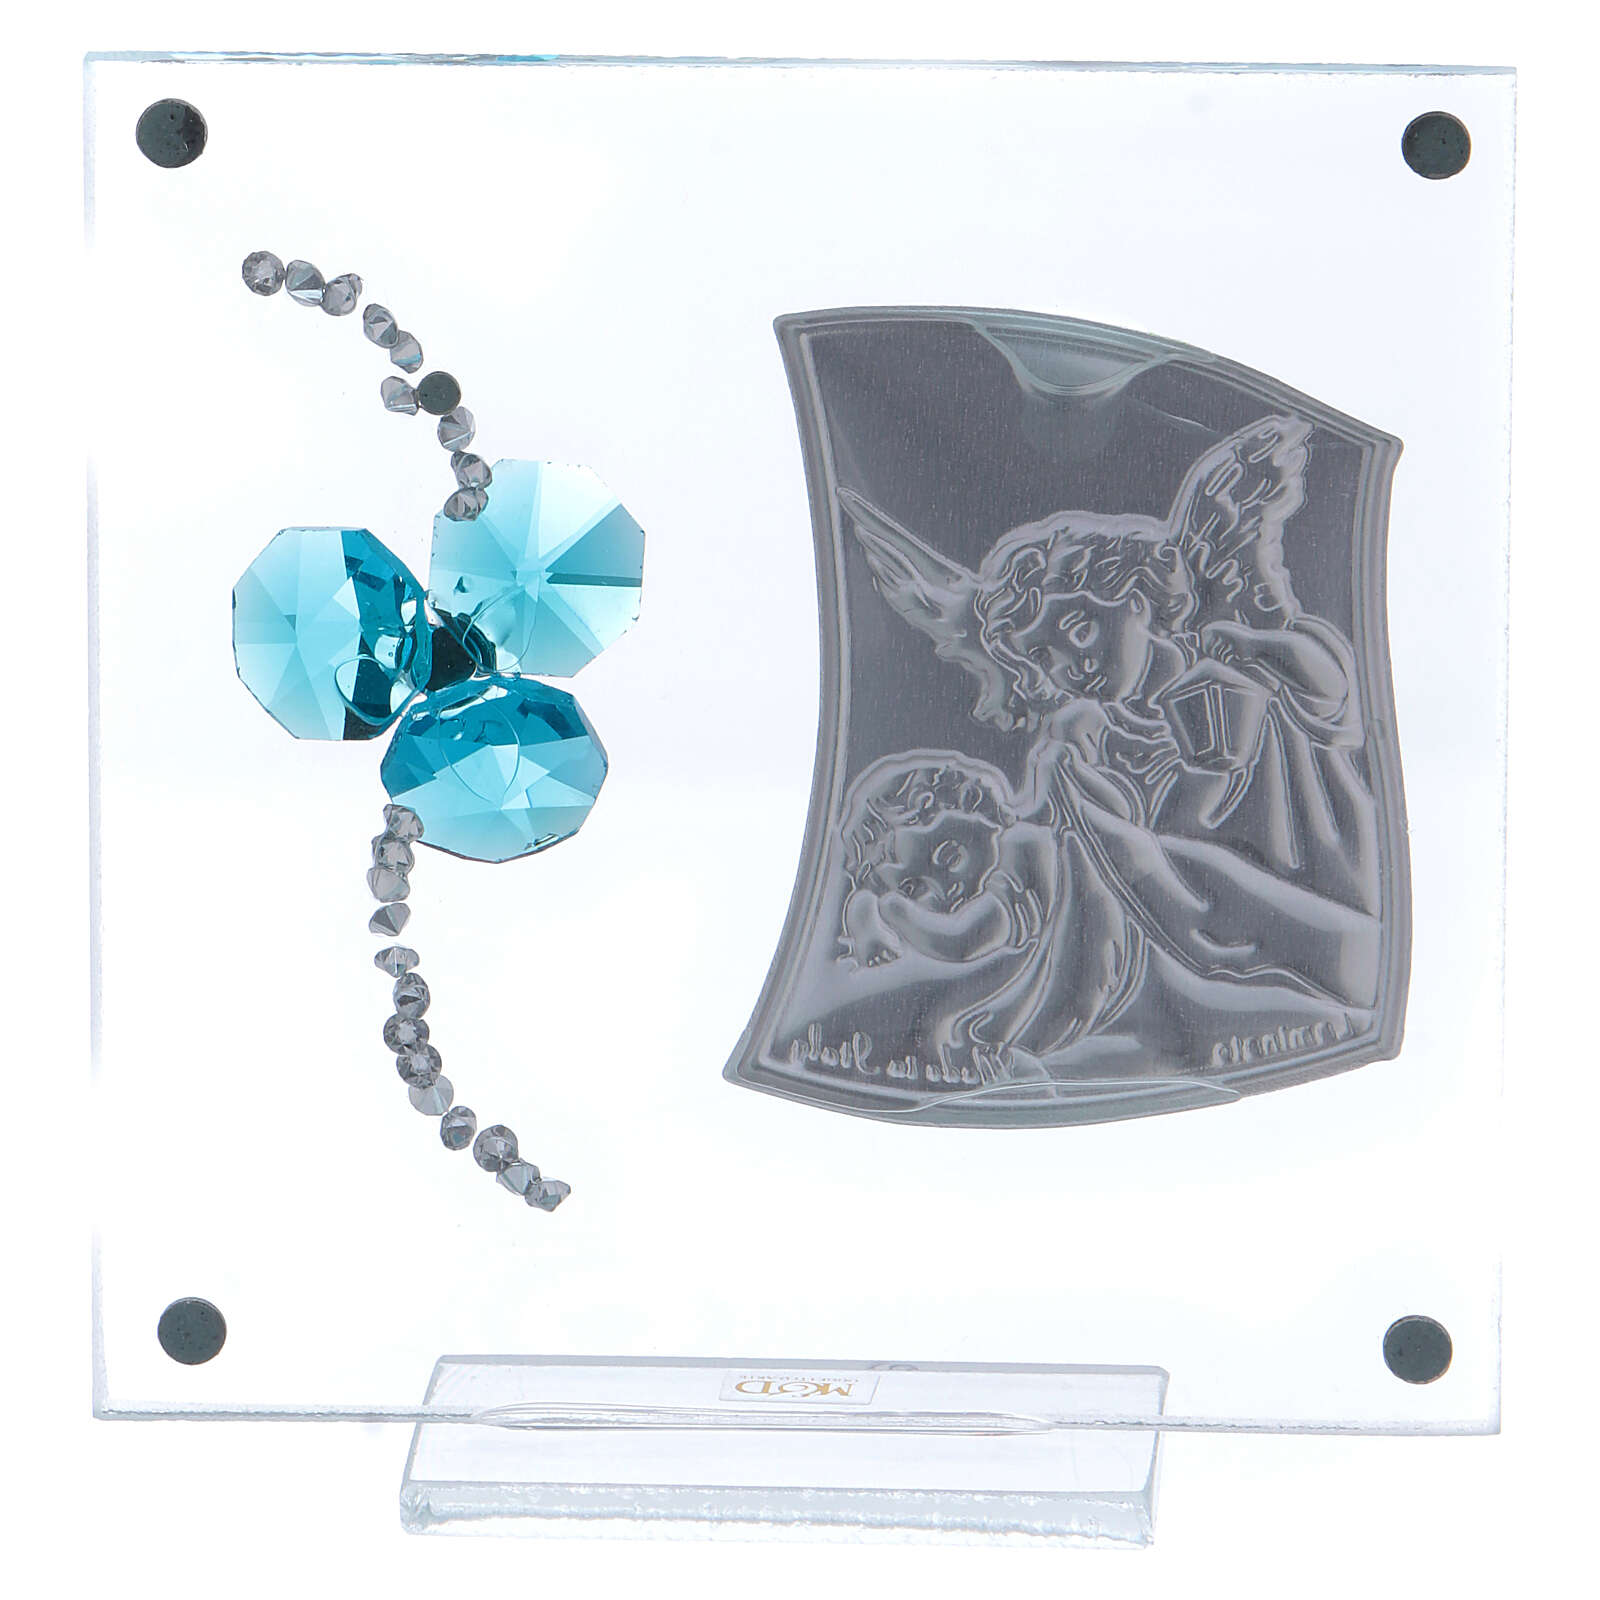 Glass frame Angels aquamarine clover 4x4 in 3